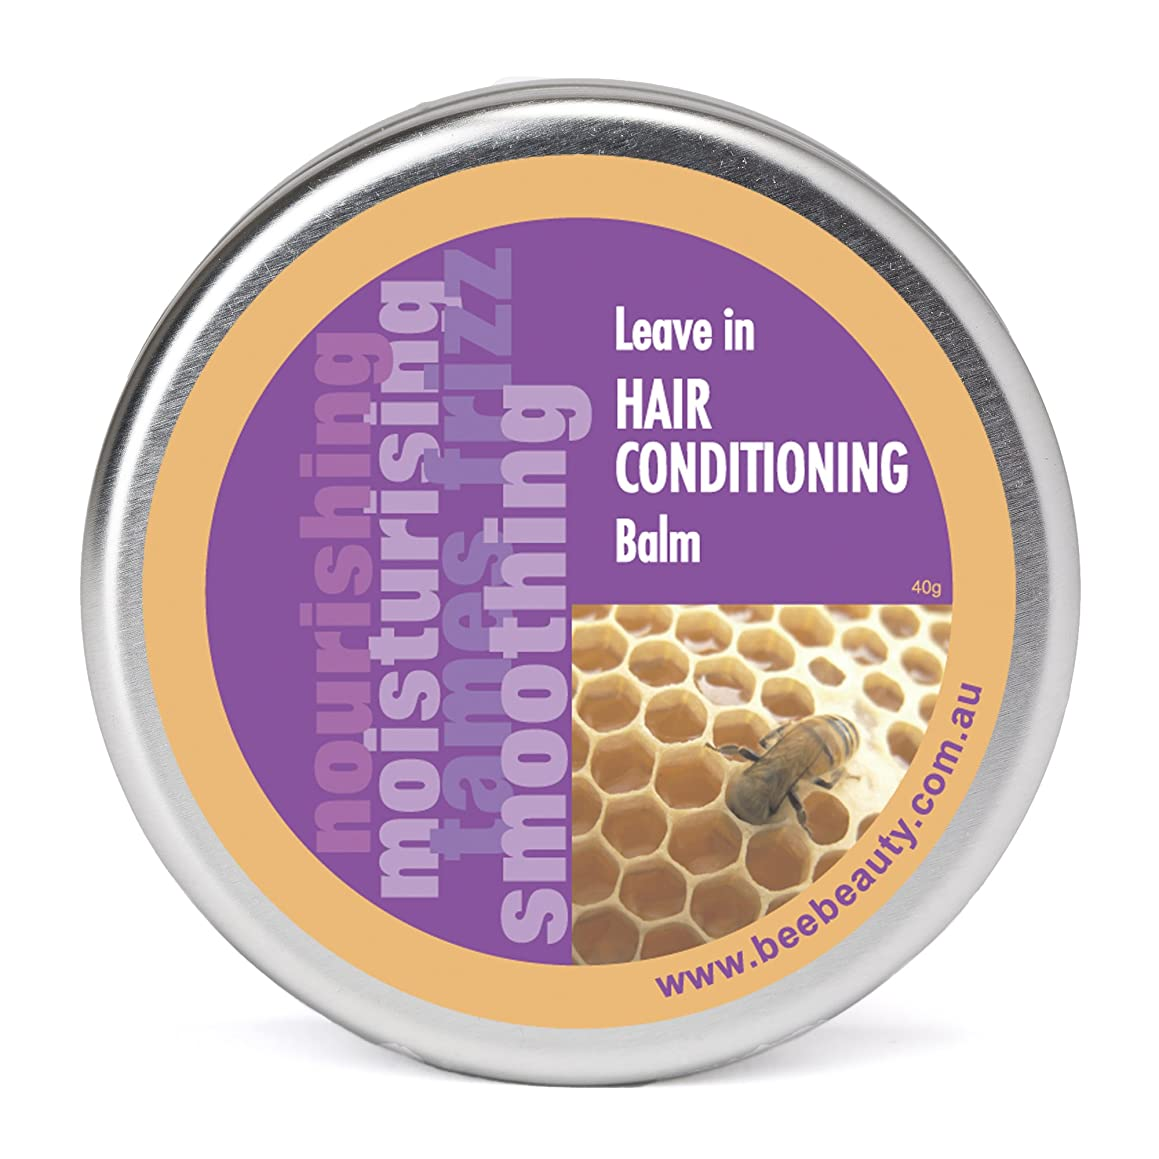 Leave In Hair Conditioner Balm for Curly Frizzy Hair | Deep Conditioning Treatment Healthy Hair | All Natural & Chemical Free | Jojoba Oil & Organic Tasmanian Leatherwood Beeswax